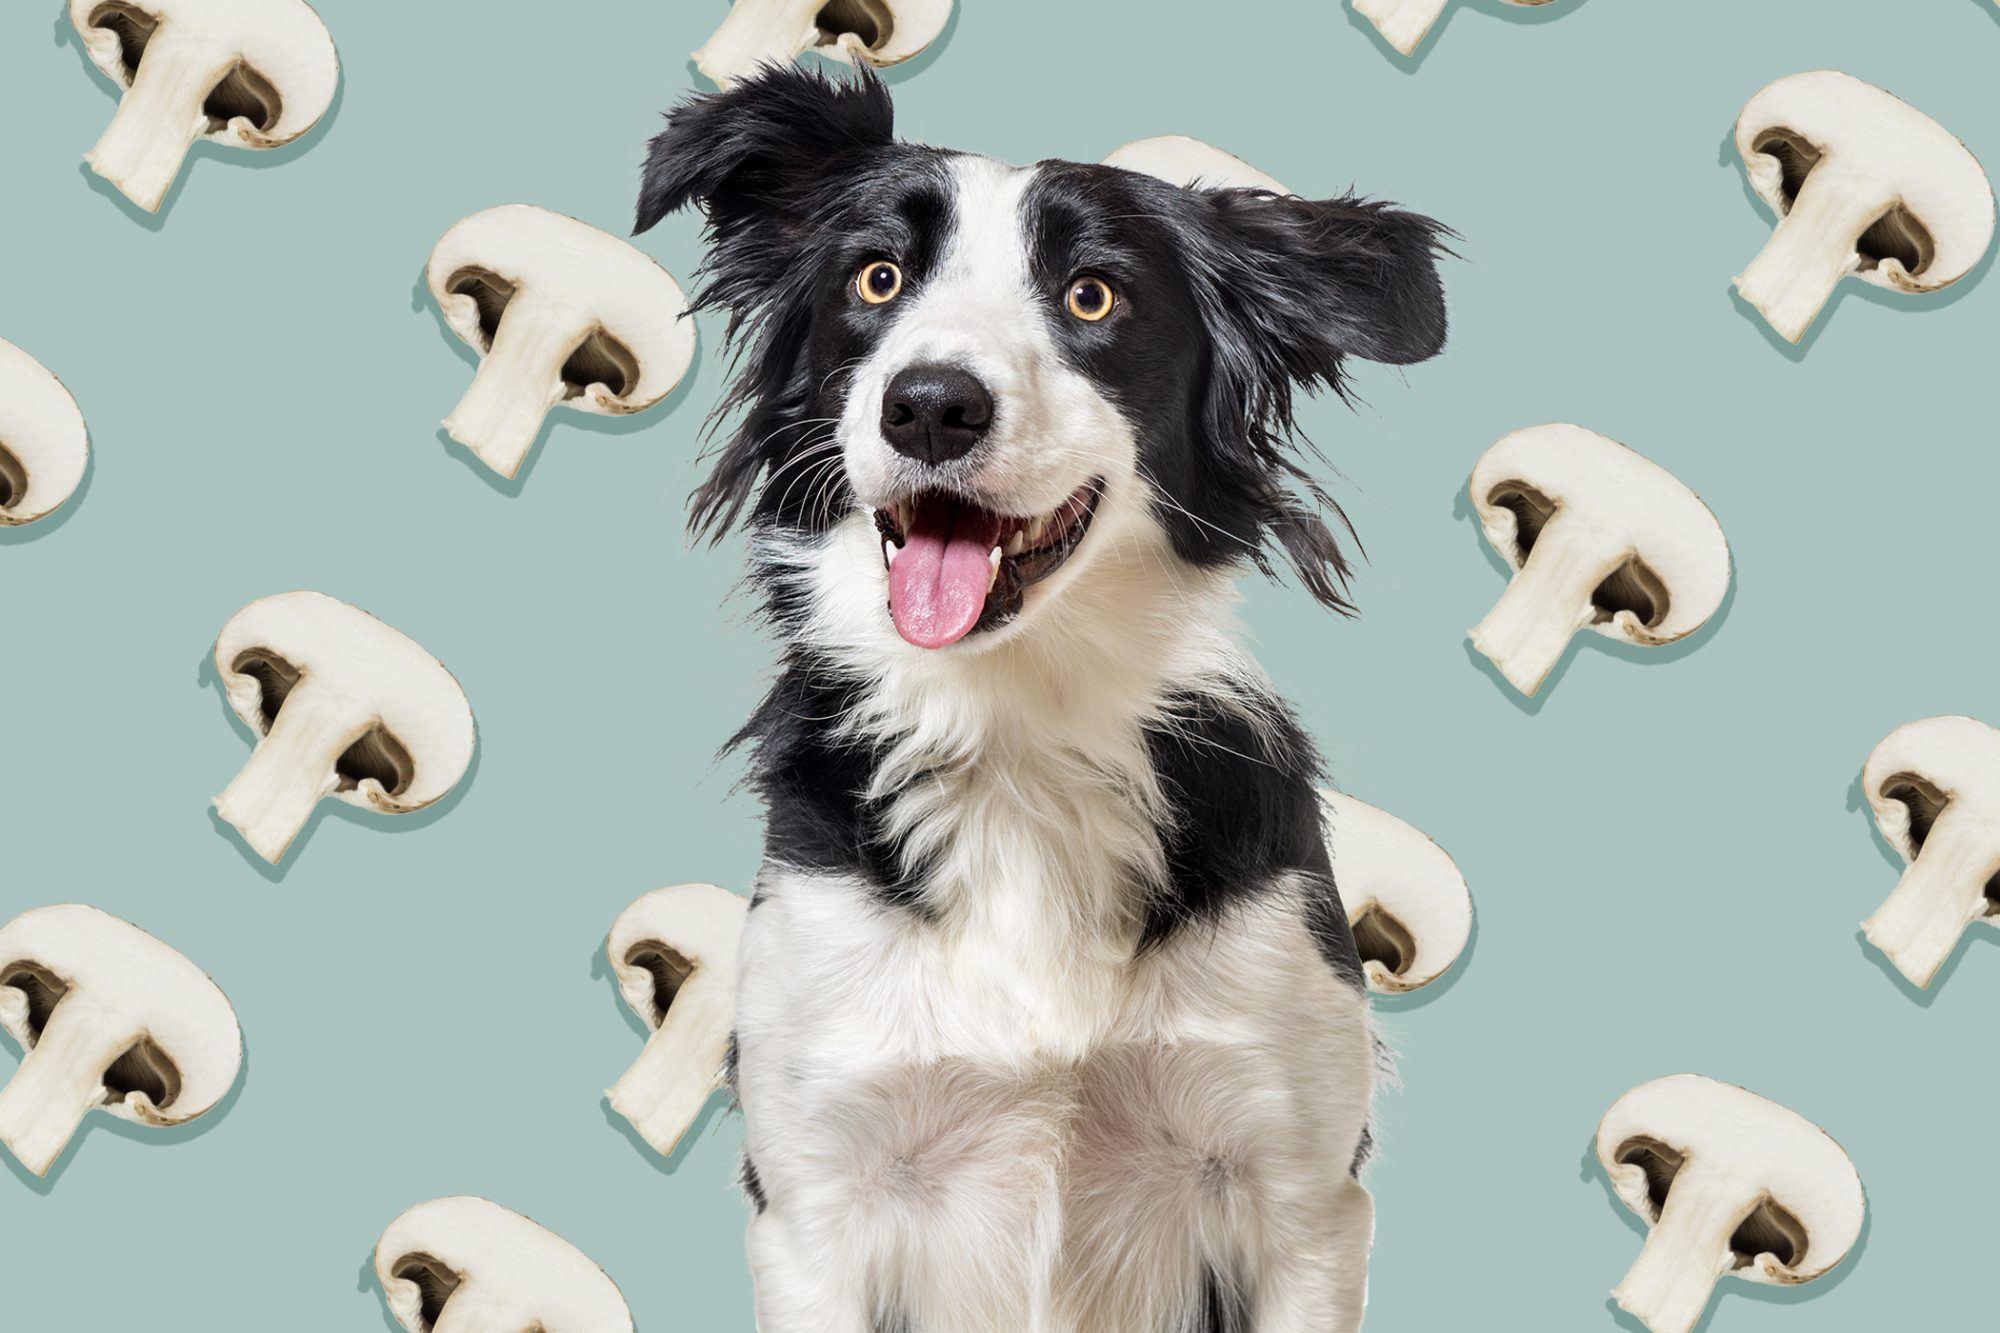 Black and white shepherd dog in front of mushroom graphic design illustration